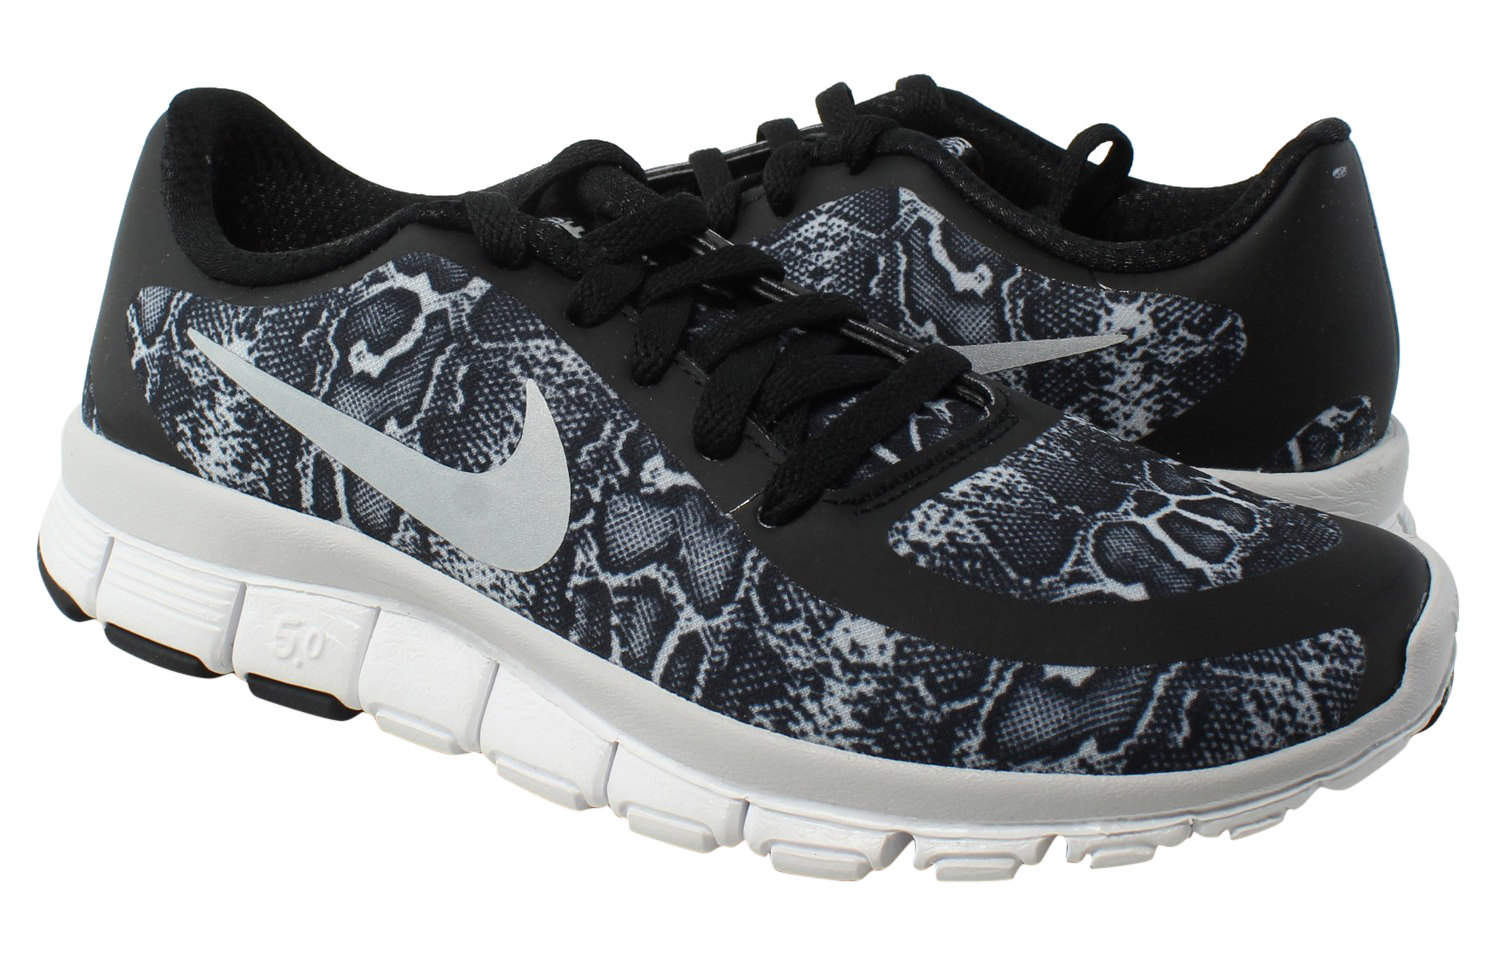 7bcca0049a1ac New Nike Womens Free 5.0 V4 Ns Pt Black Running Shoes Size 5 ...